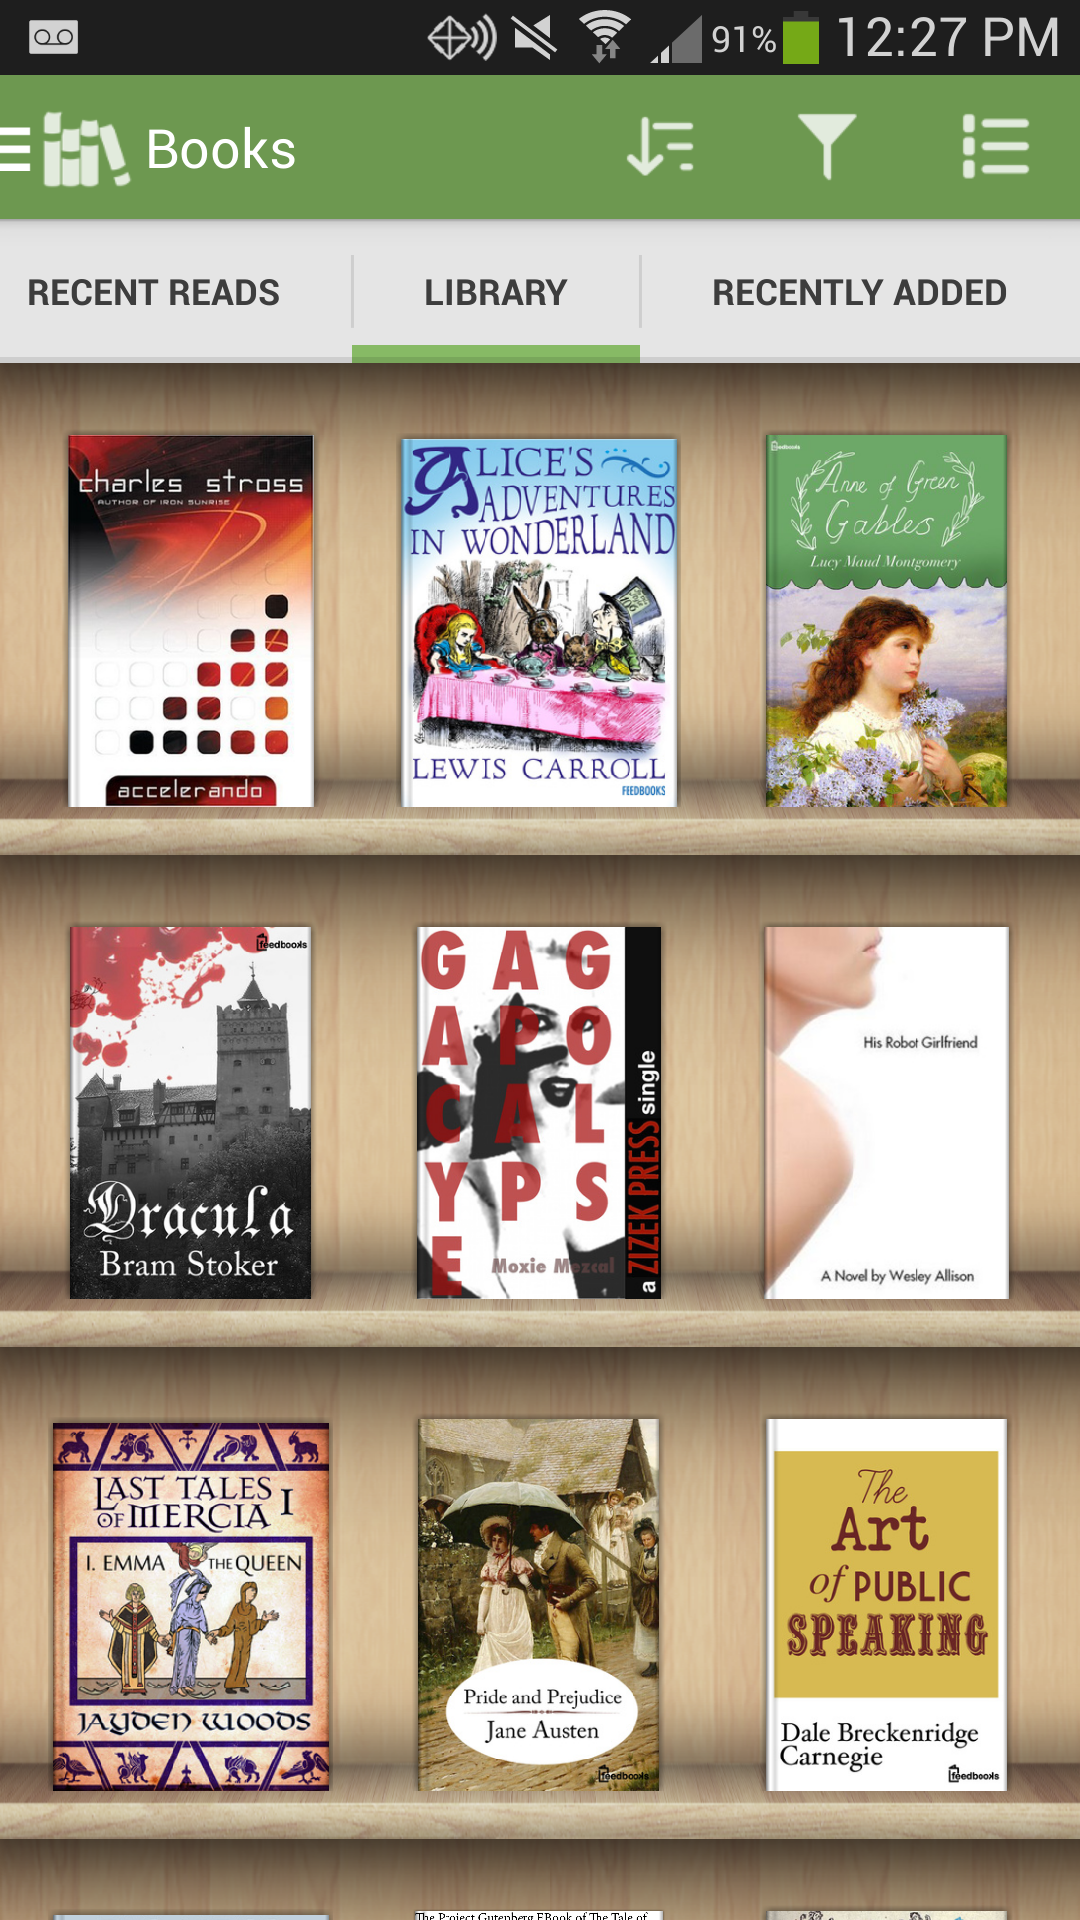 Aldiko Book Reader Premium screenshot #2